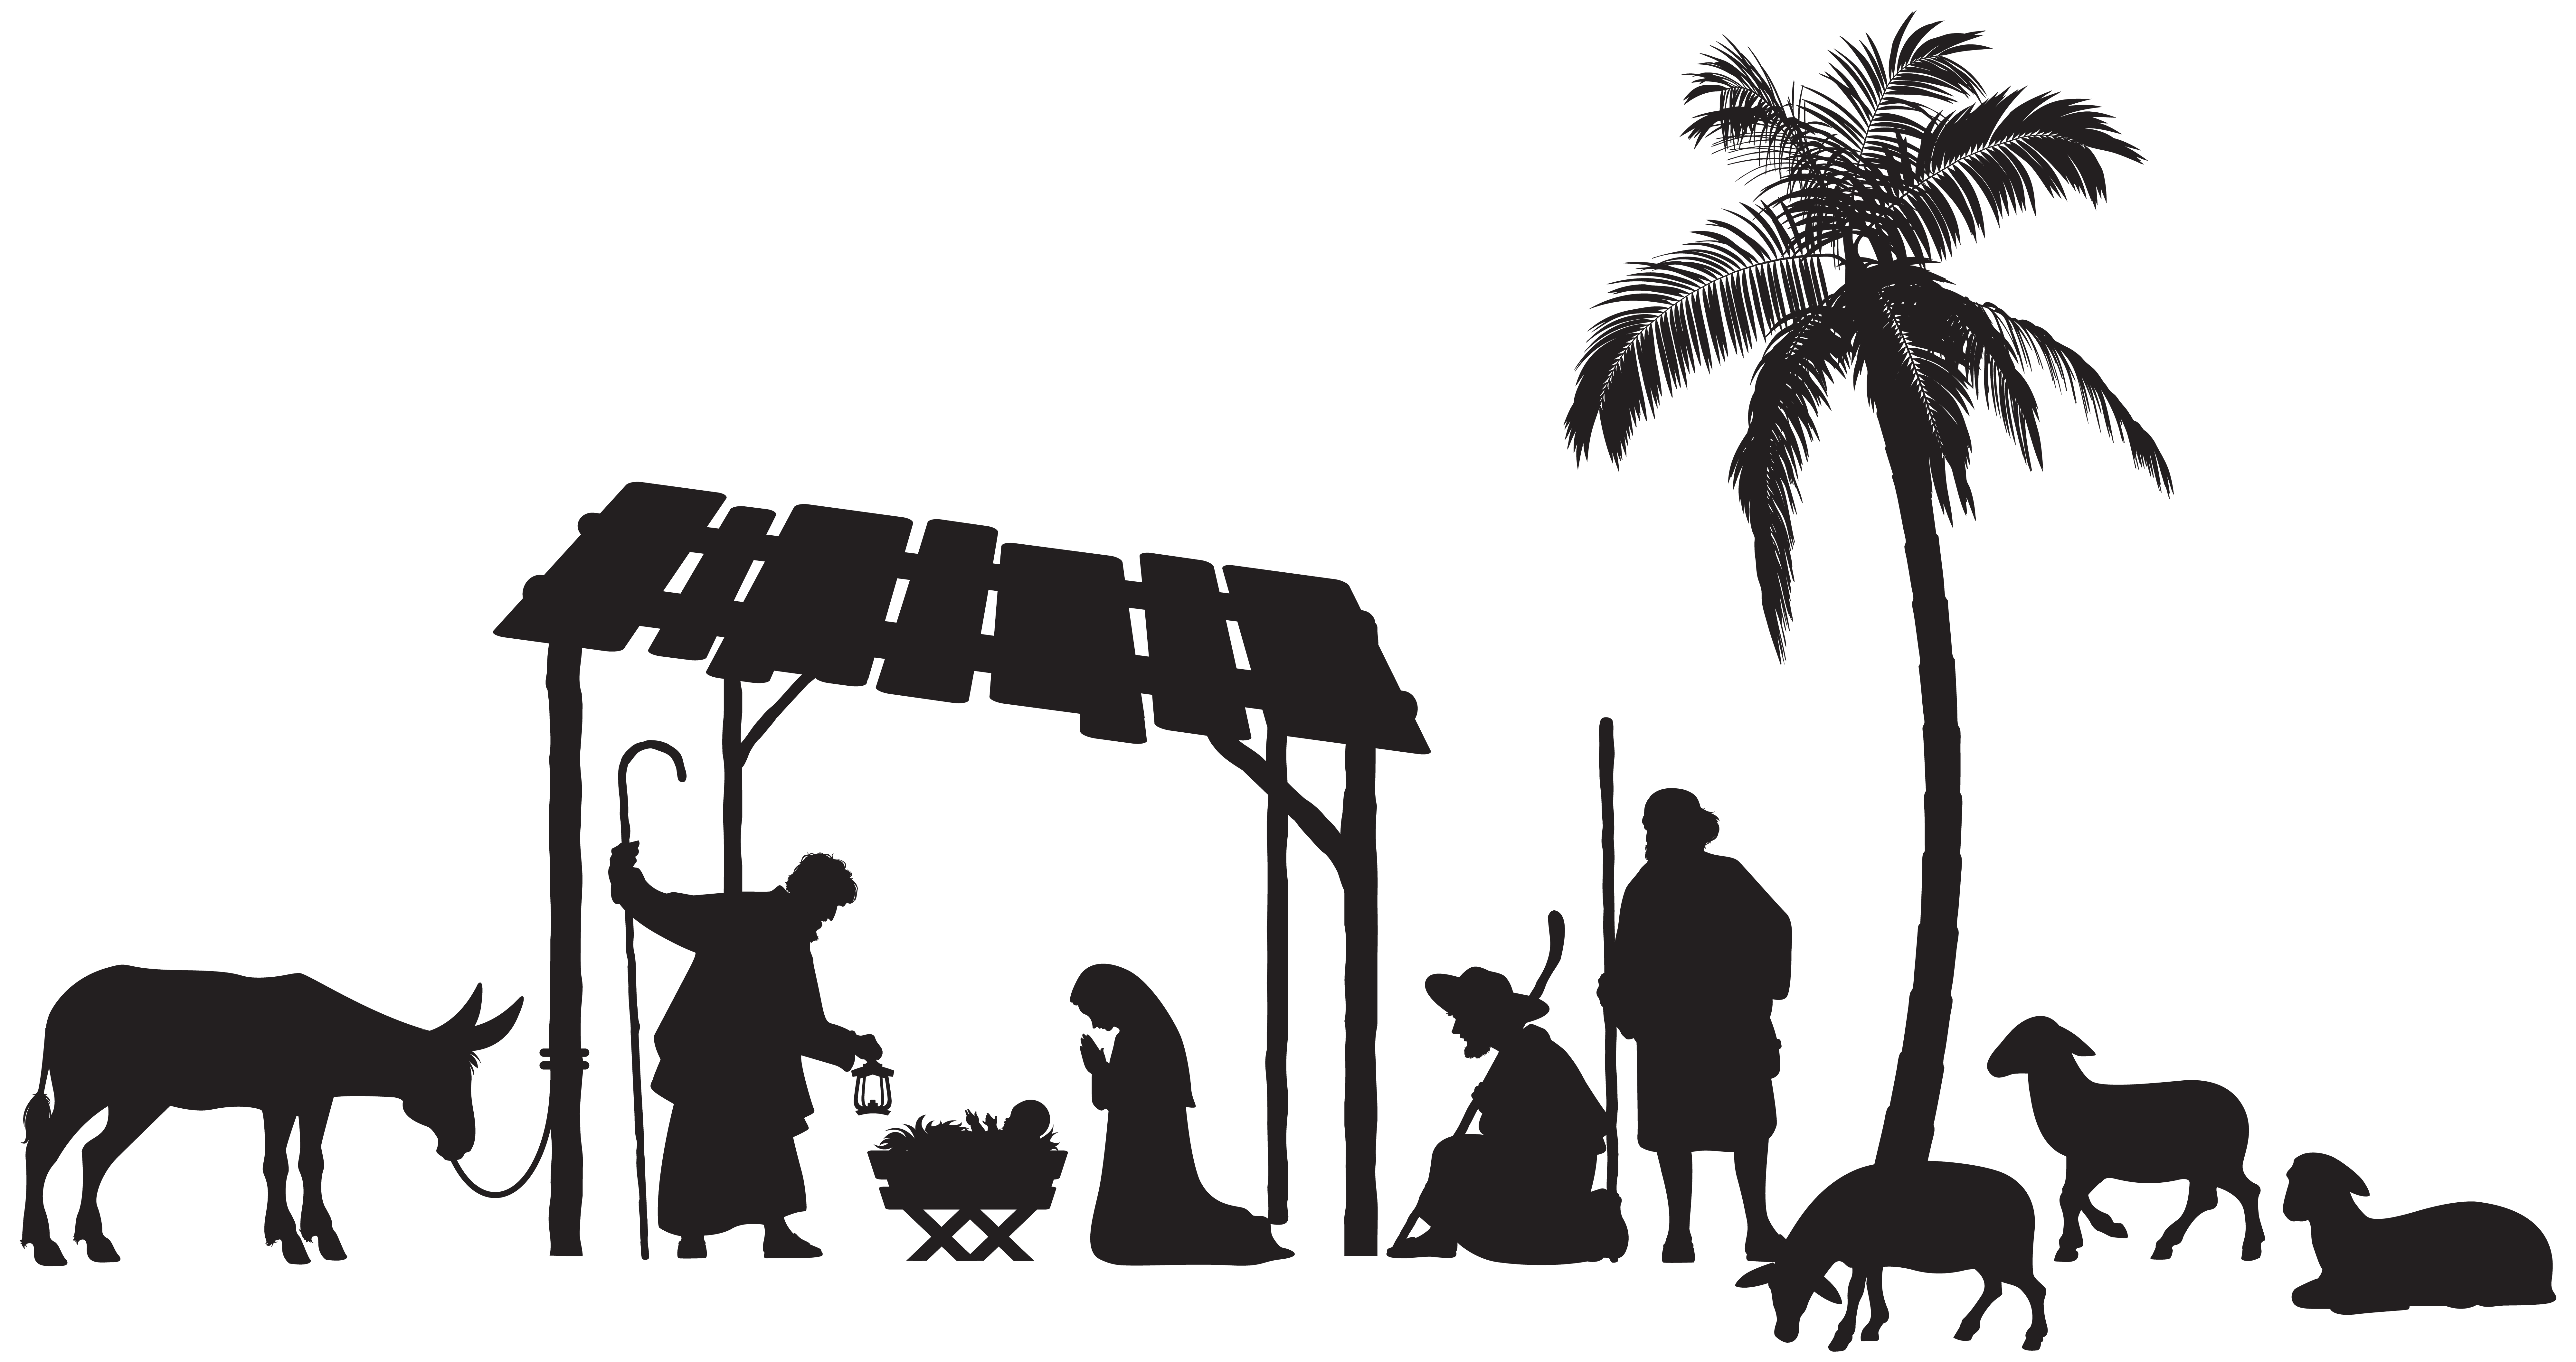 Nativity Scene Silhouette - Nativity Scene Silhouette PNG Clip Art Image | Gallery ...